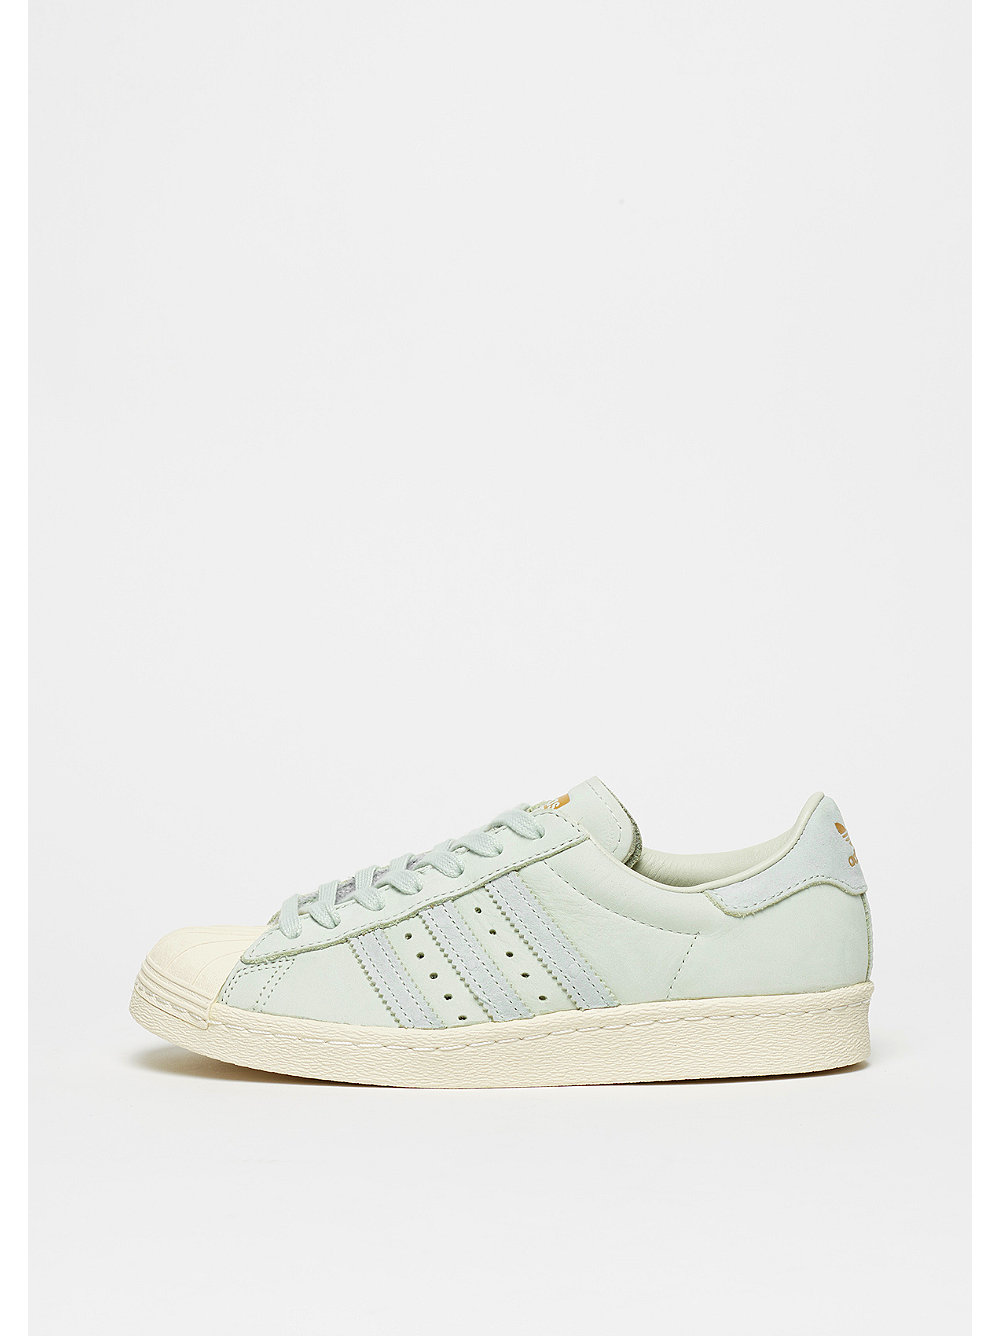 adidas Superstar 80s linen green-linen green-off white